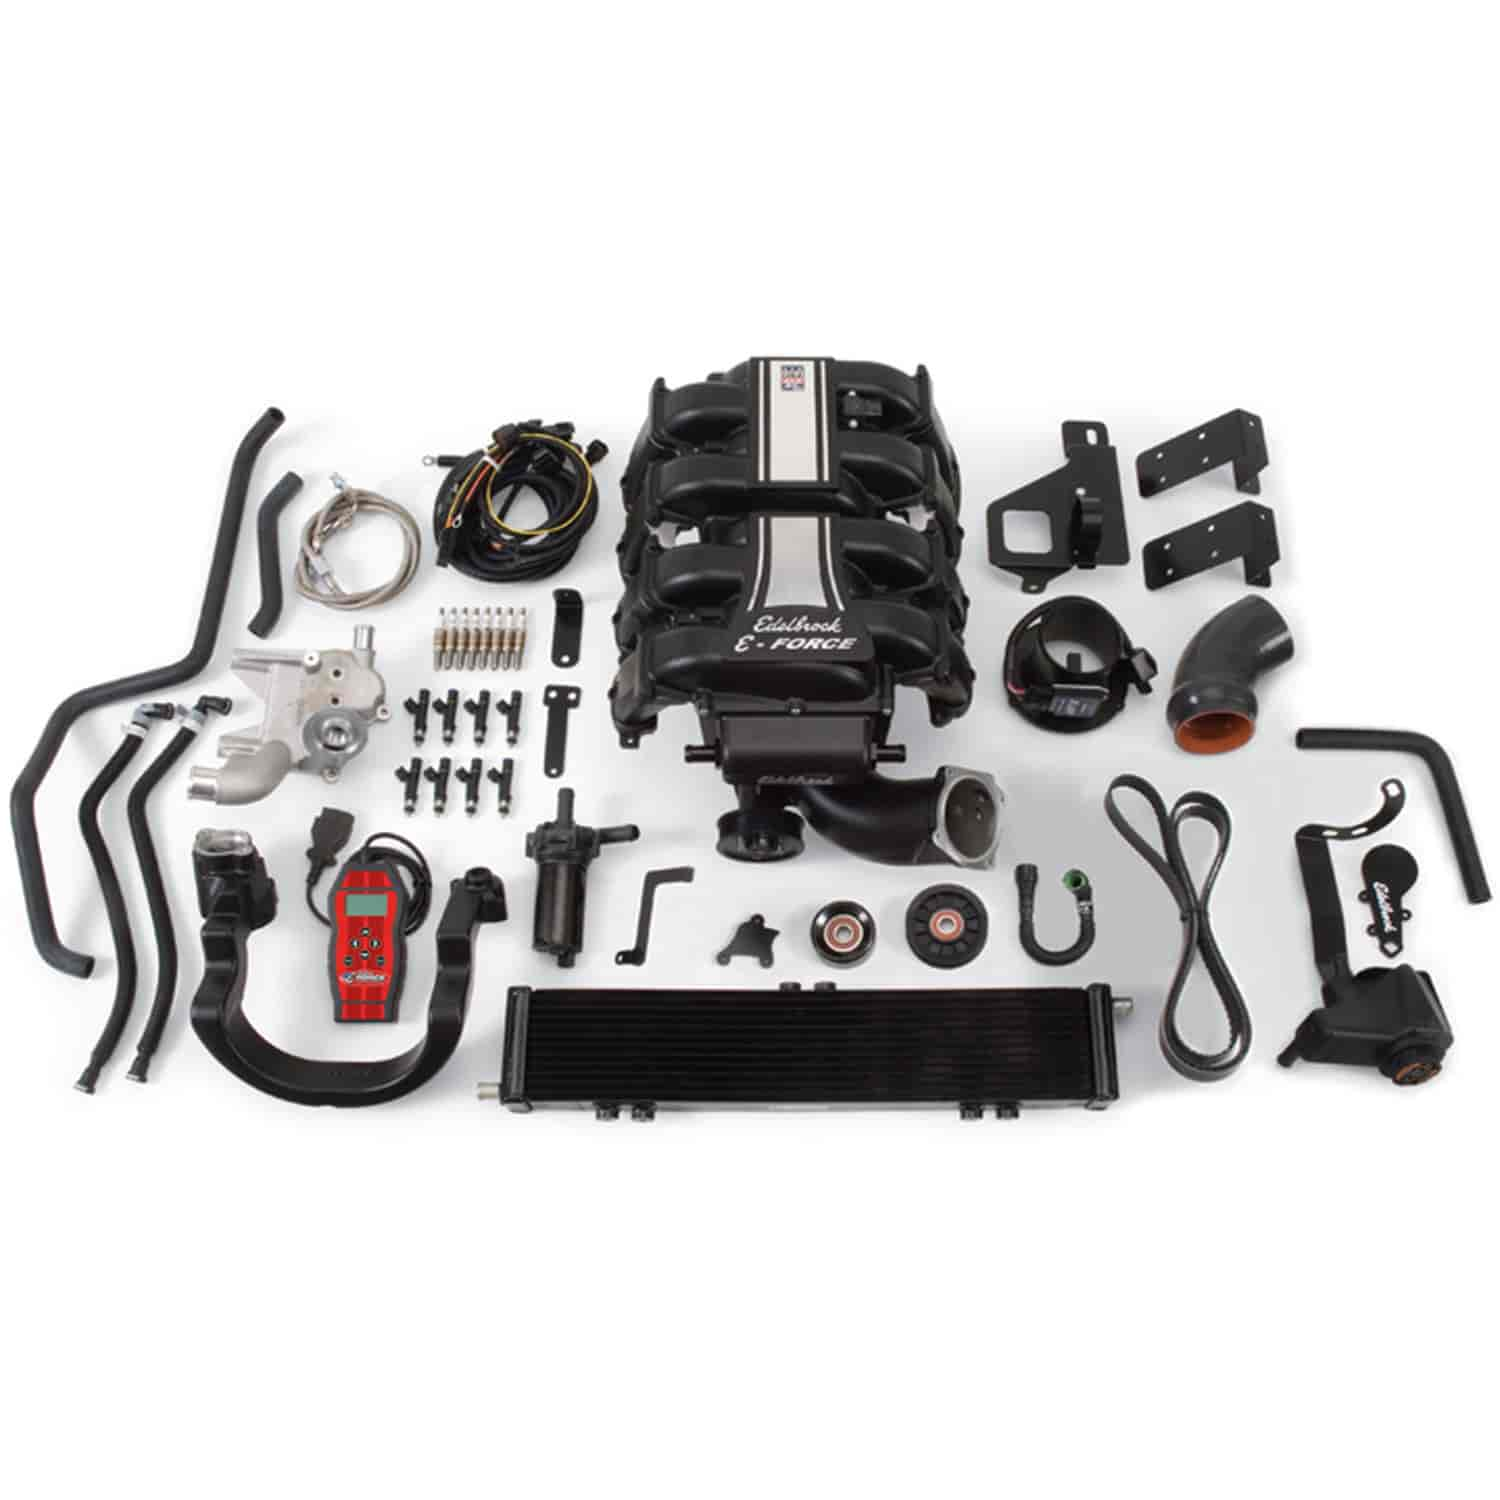 Edelbrock 1583 - Edelbrock E-Force Supercharger Kits for Ford F-150